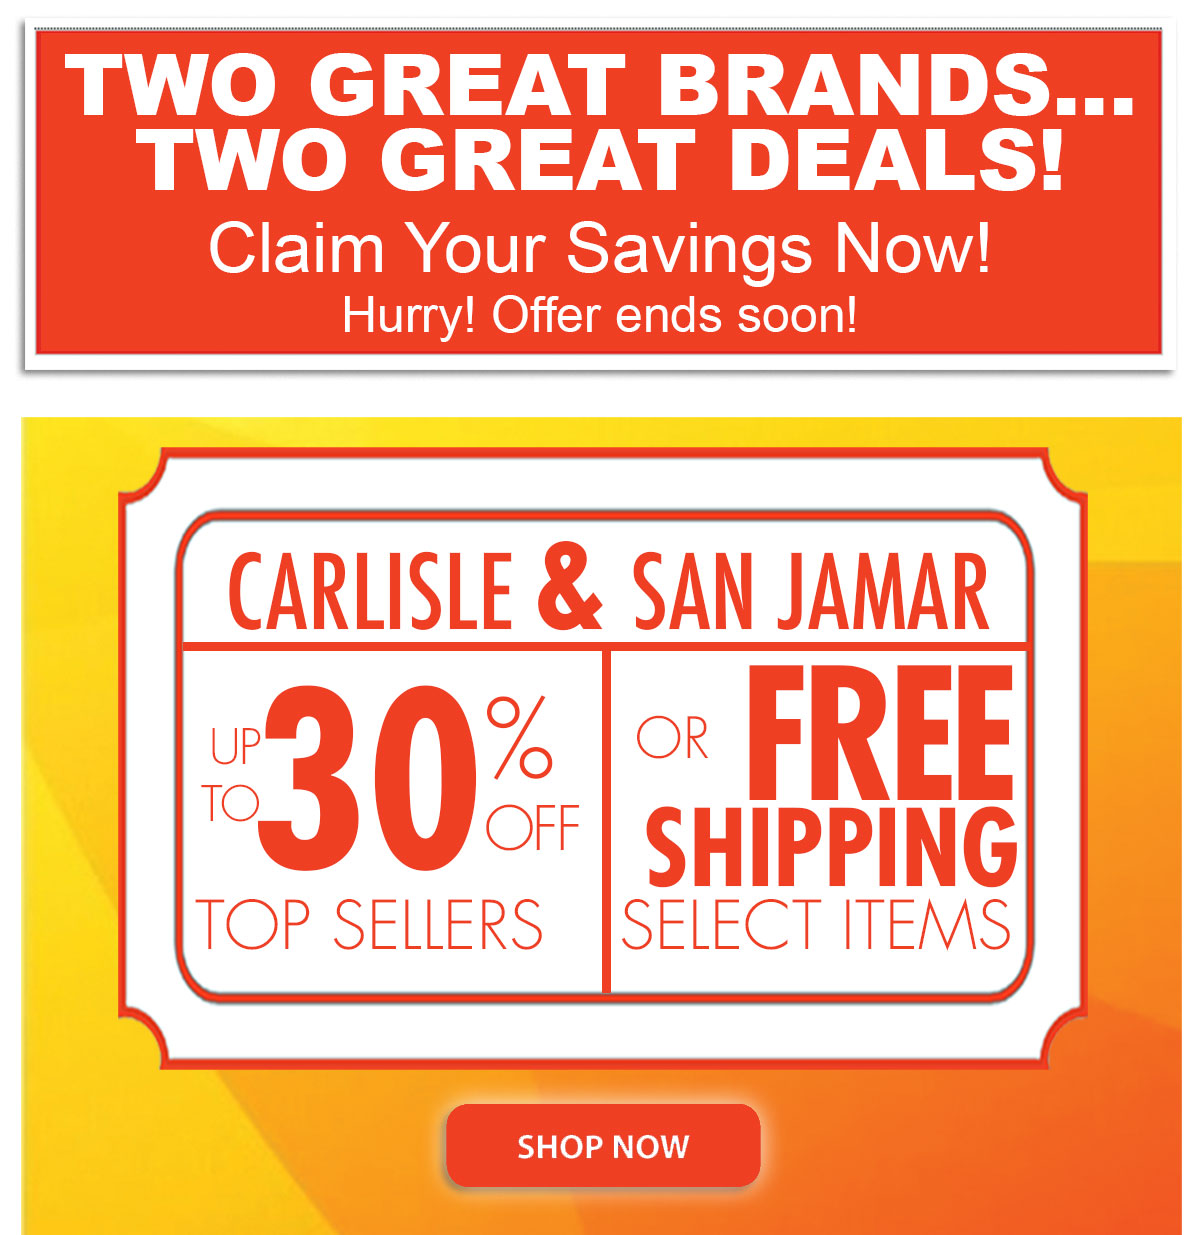 Two Great Brands (San Jamar and Carlisel) -- Two Great Deals (up to 30% off or Free Shipping)